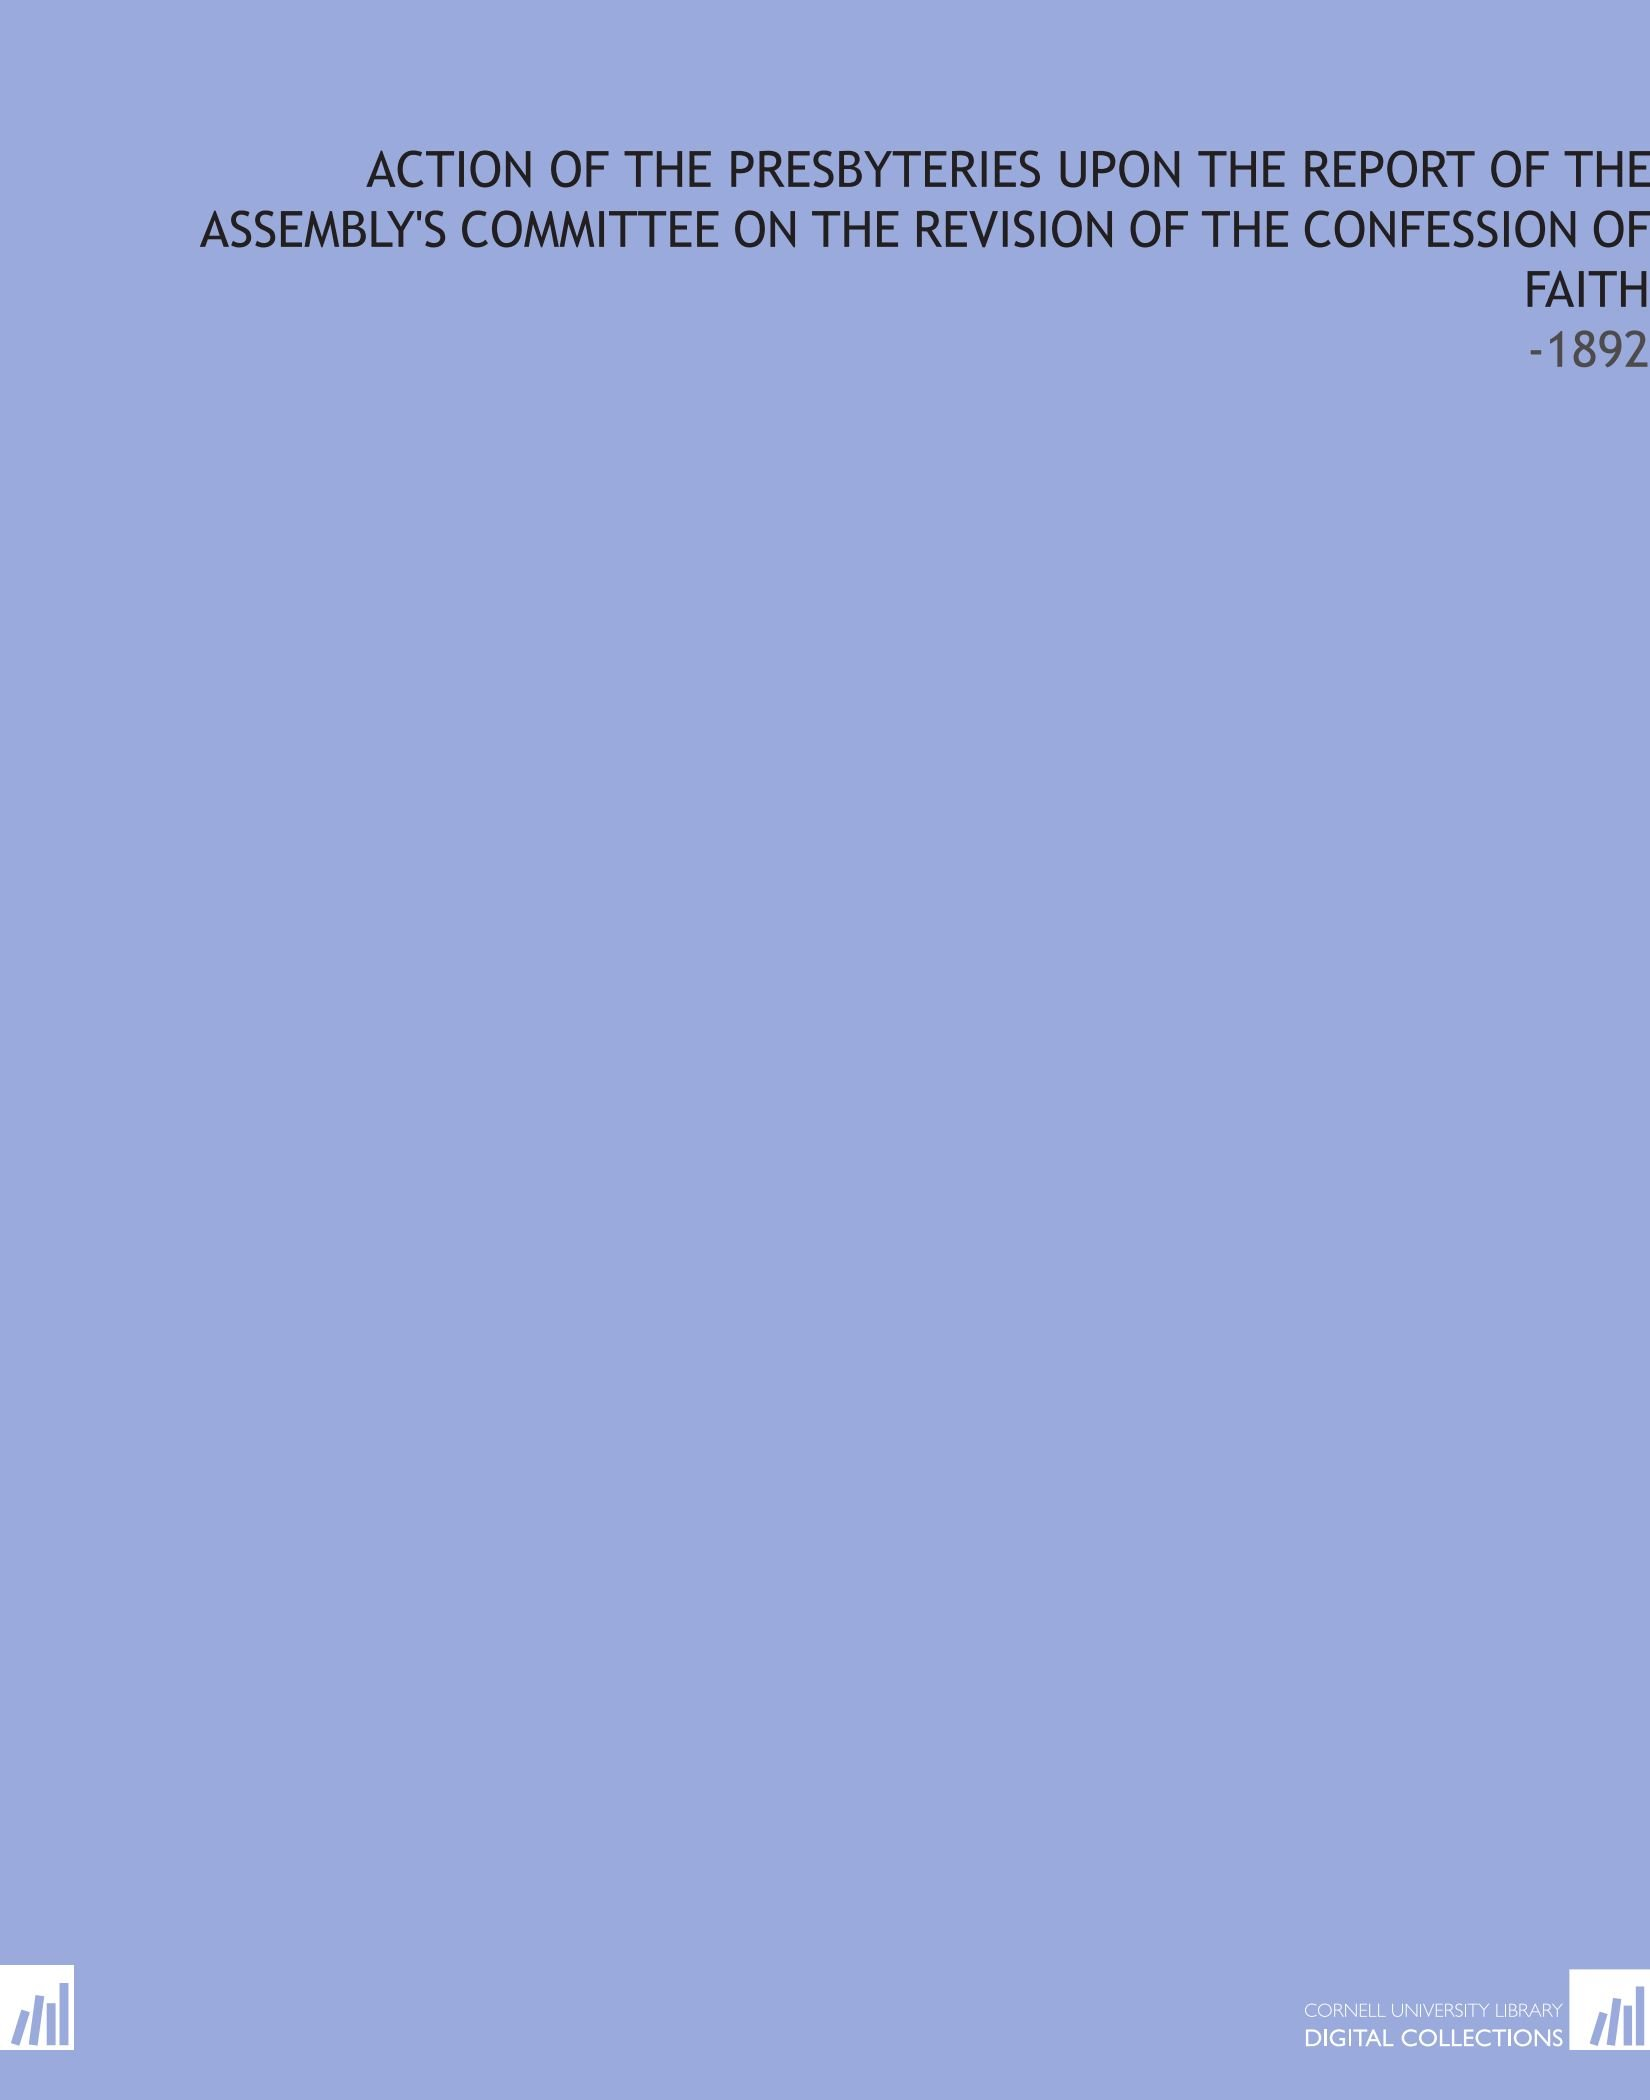 Action of the Presbyteries Upon the Report of the Assembly's Committee on the Revision of the Confession of Faith: -1892 ebook